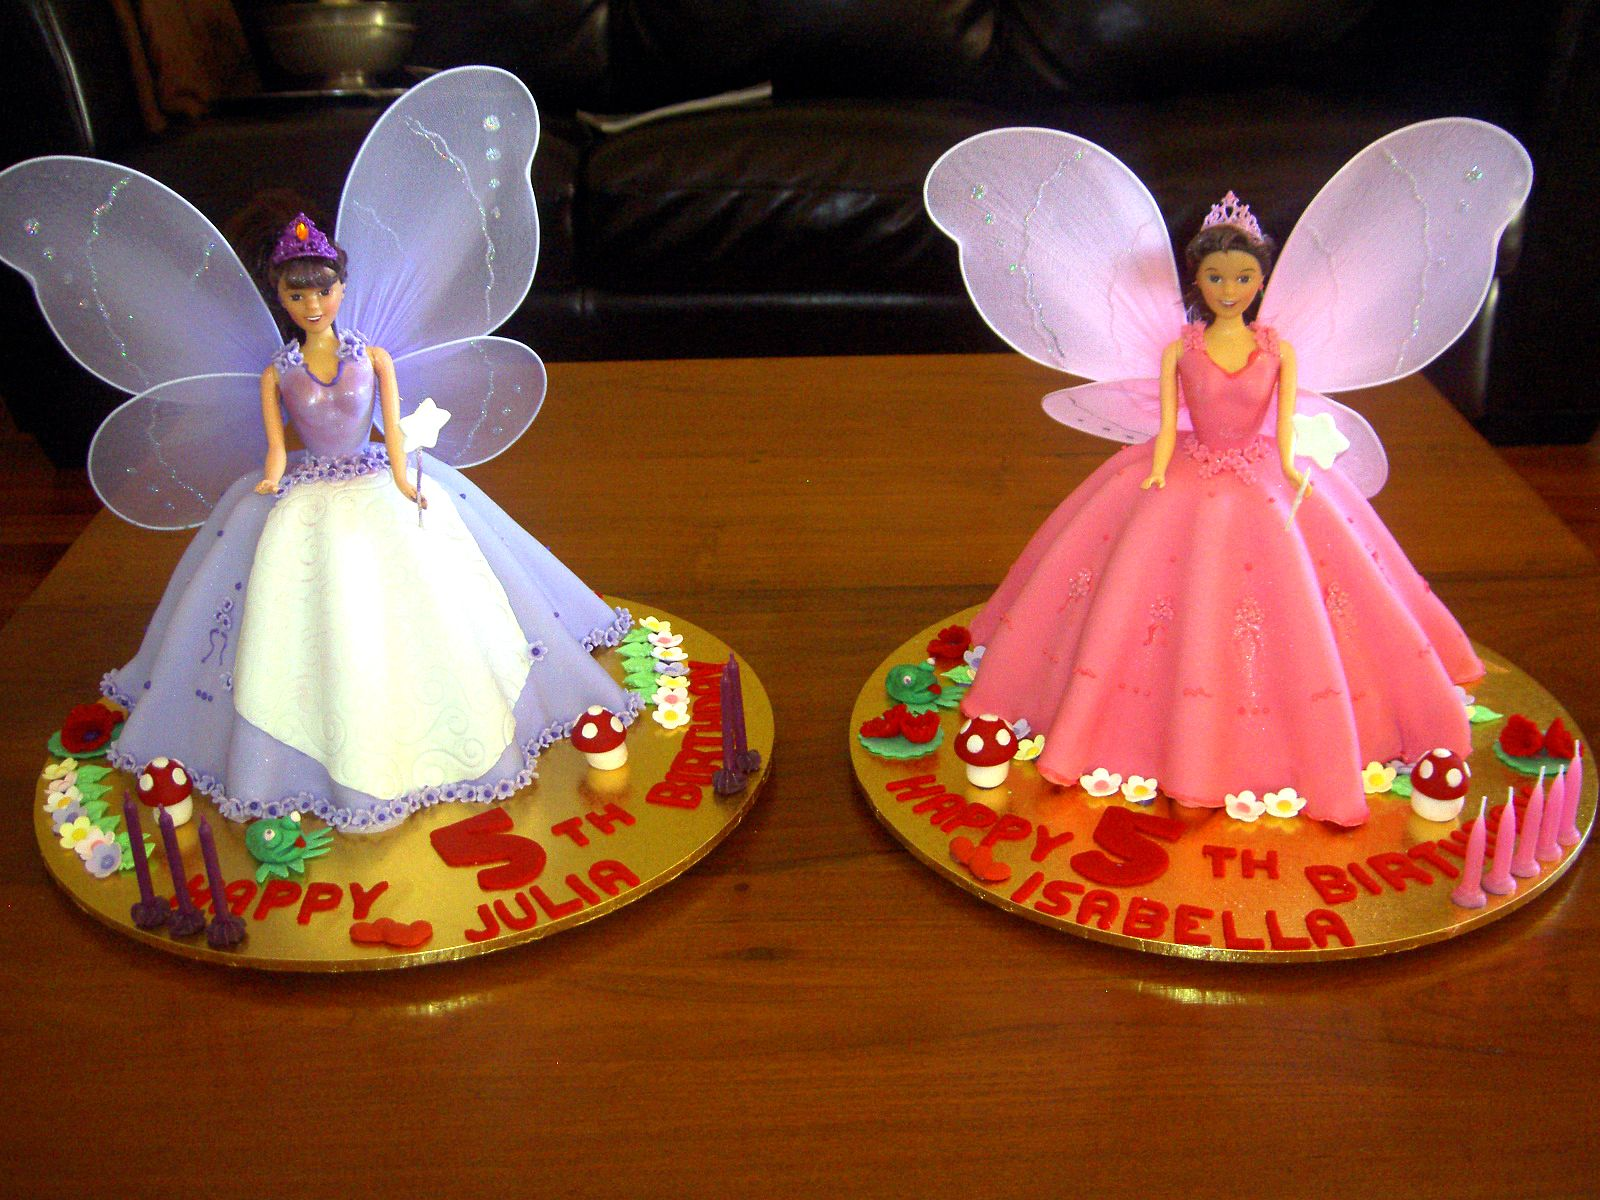 This was an order for twin girls!  They are just as beautiful as these delicious beauties!